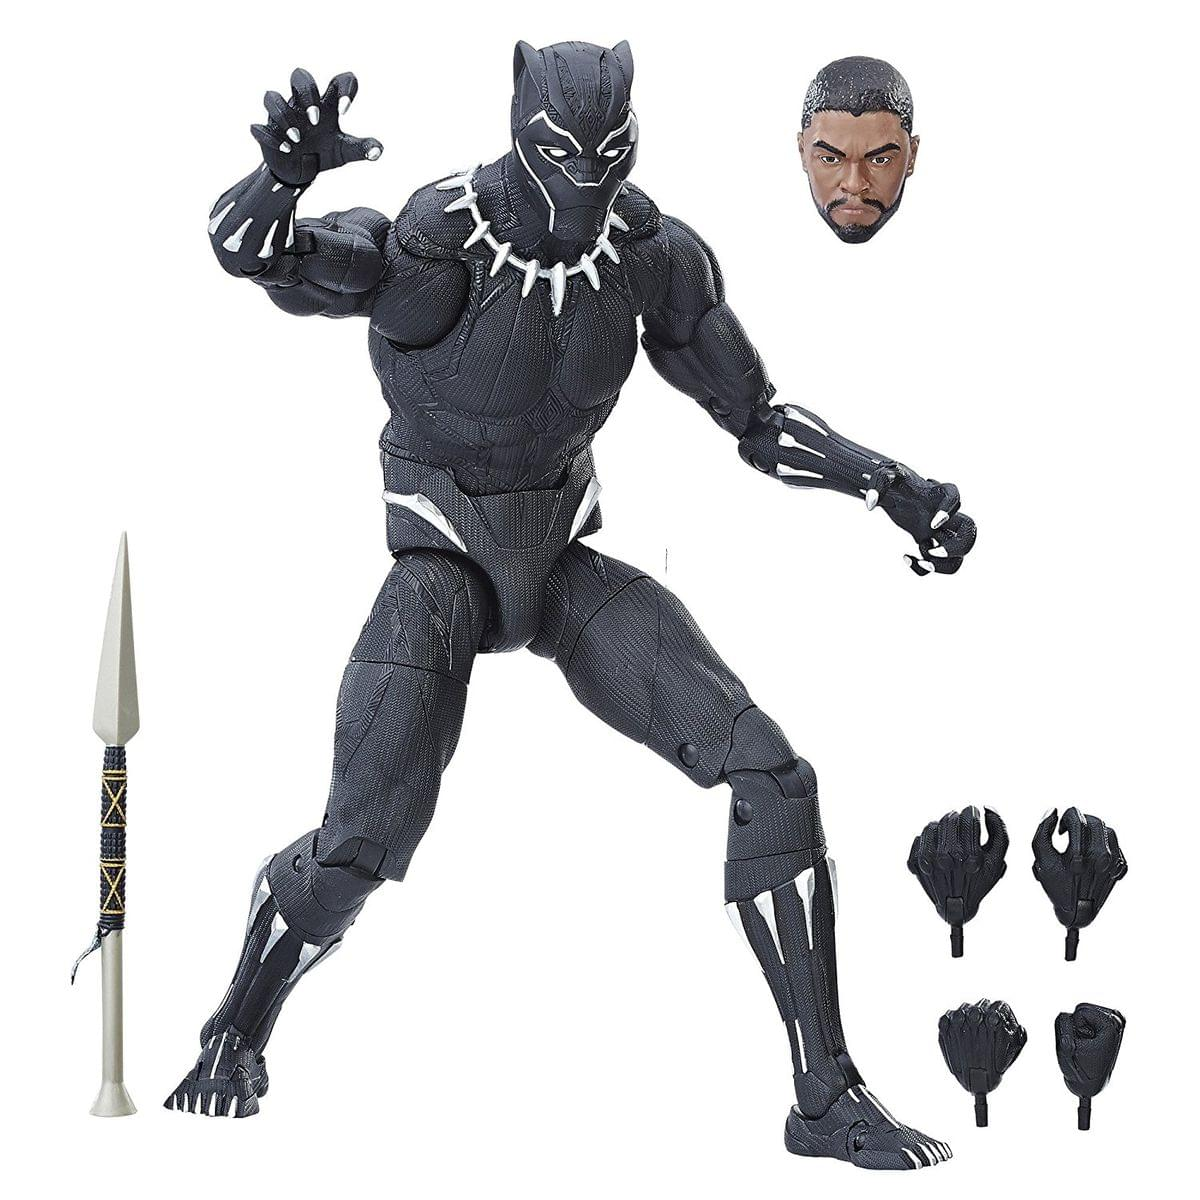 Marvel Legends 12 Inch Action Figure Giant Series - Black Panther